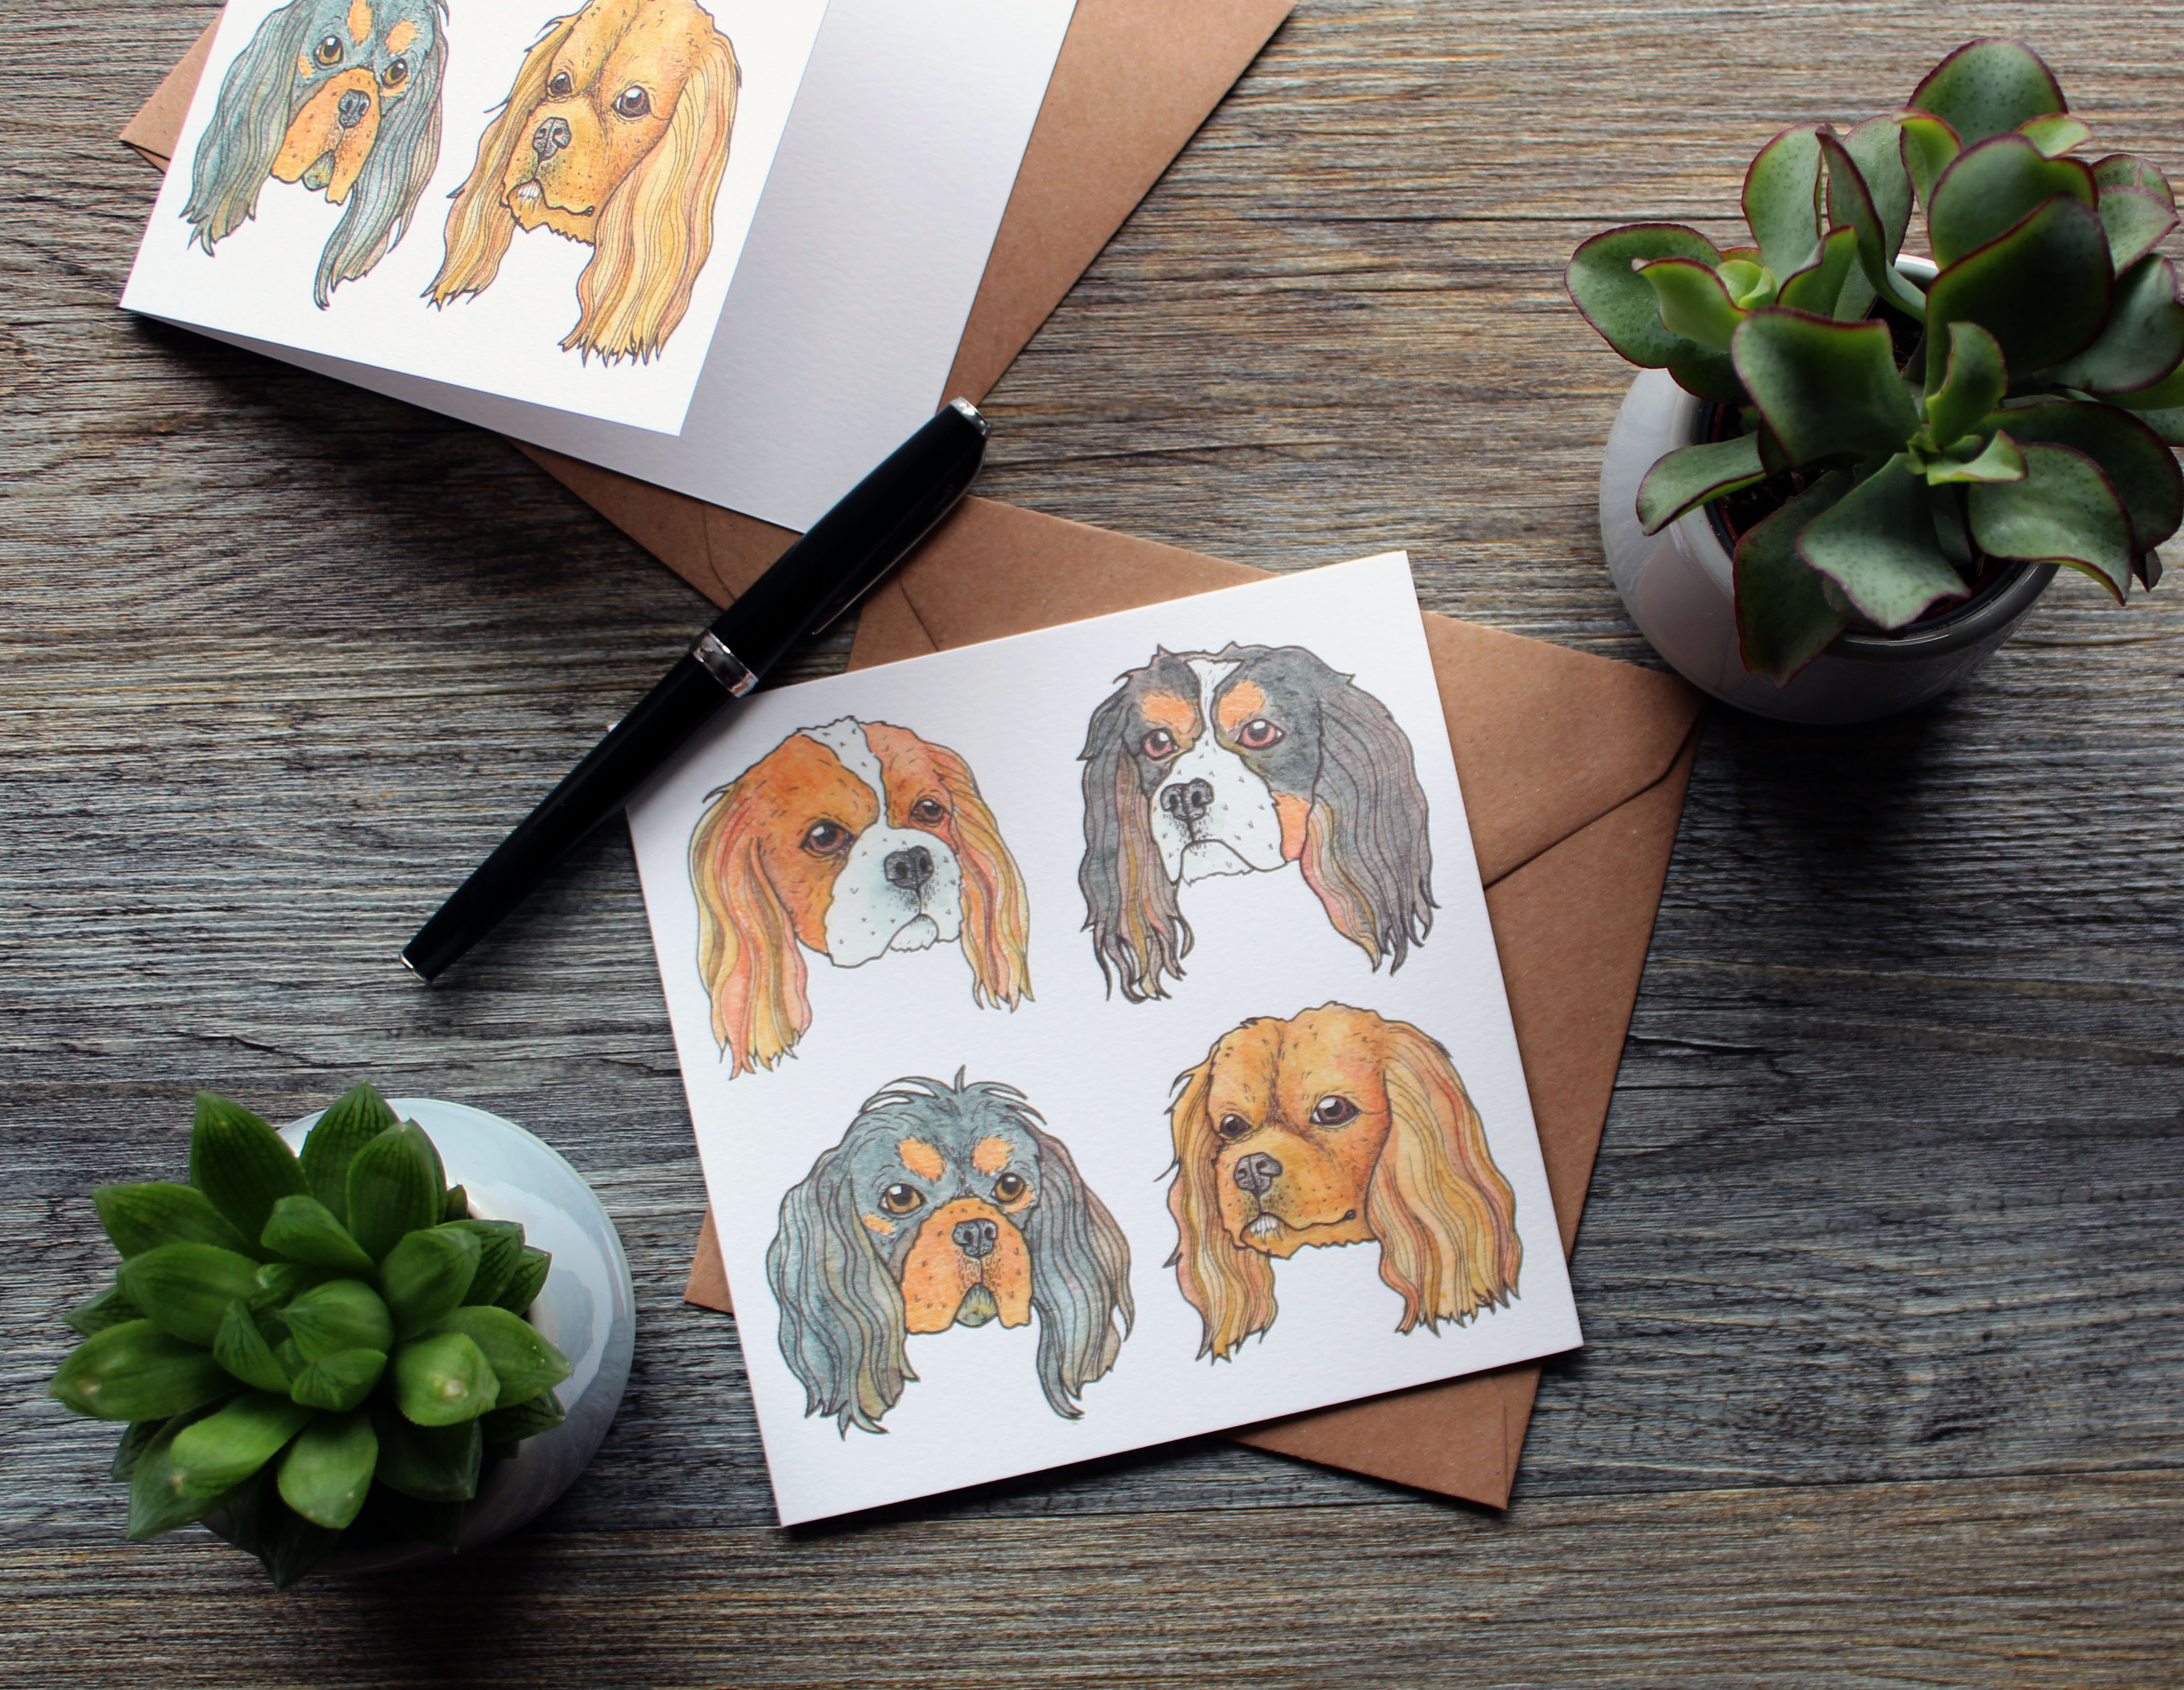 Dog art print greeting cards by drawn and drafted, printed at printed.com